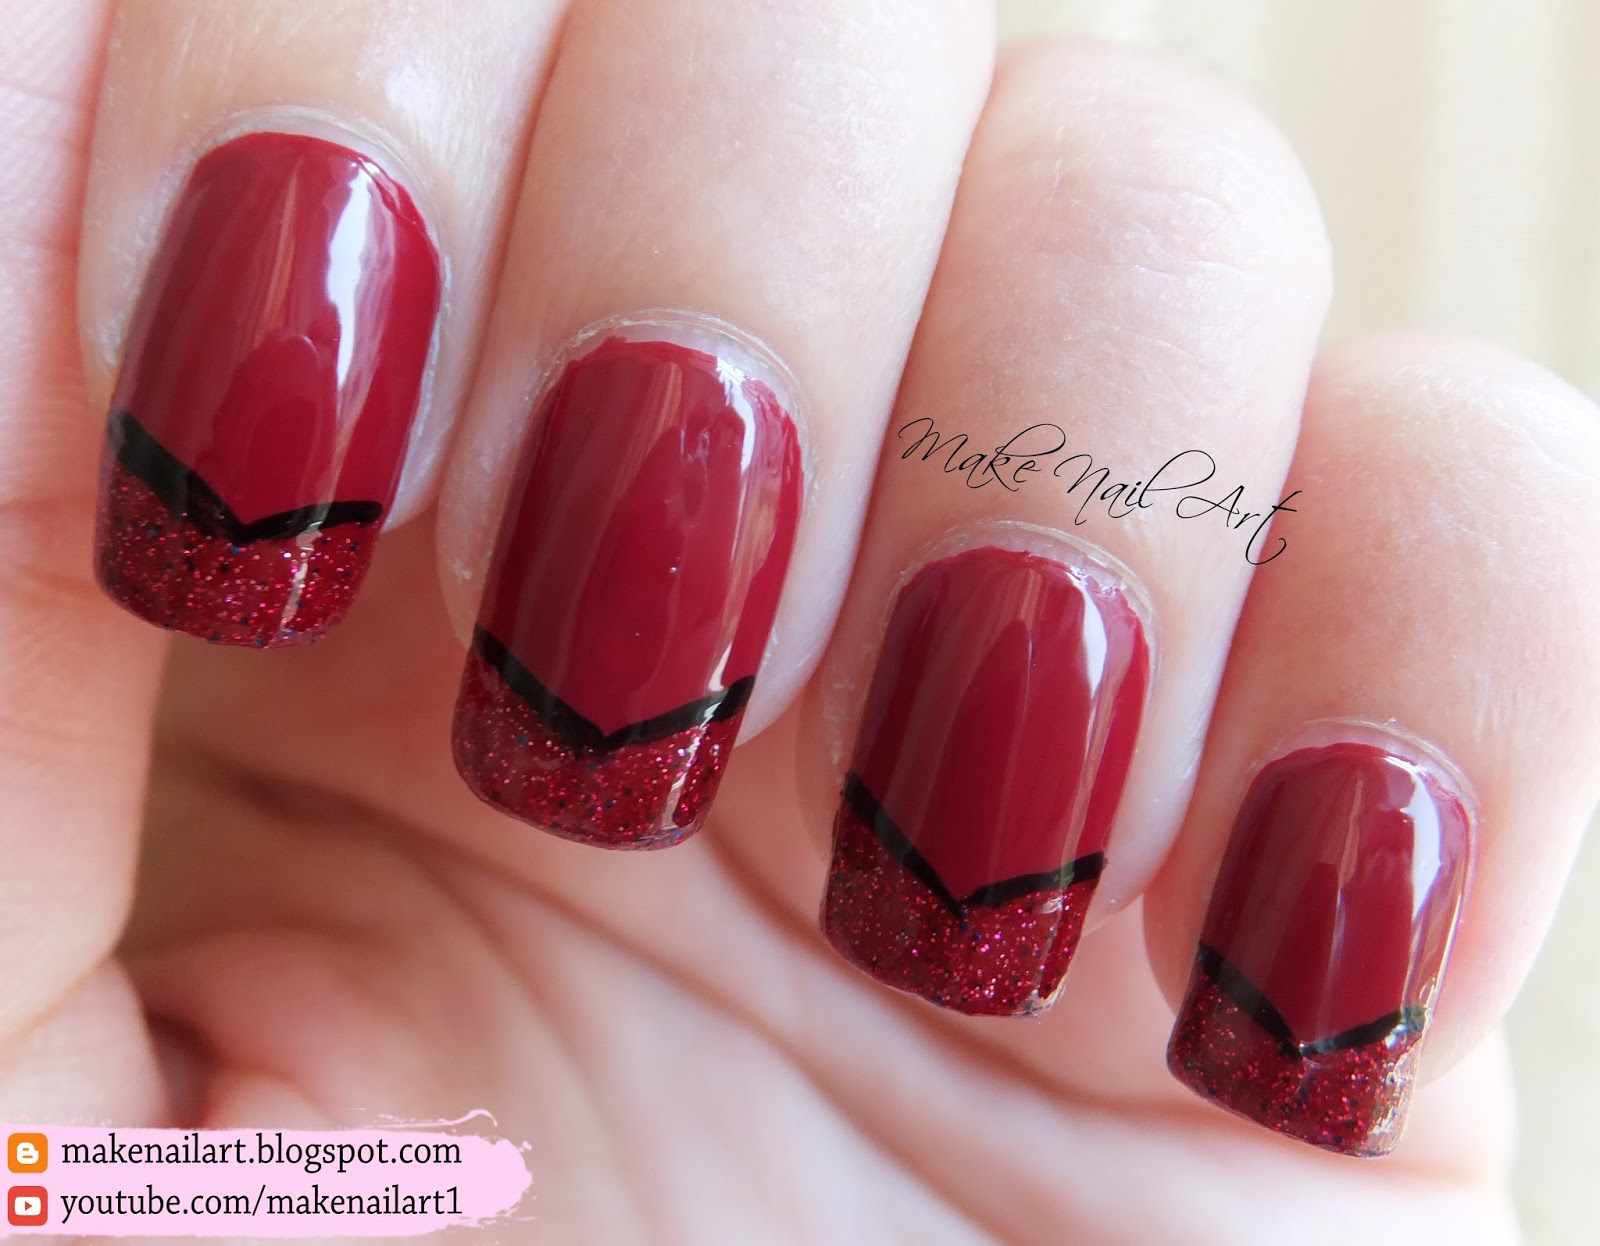 Make Nail Art: Easy Red French Manicure Nail Art Design ...